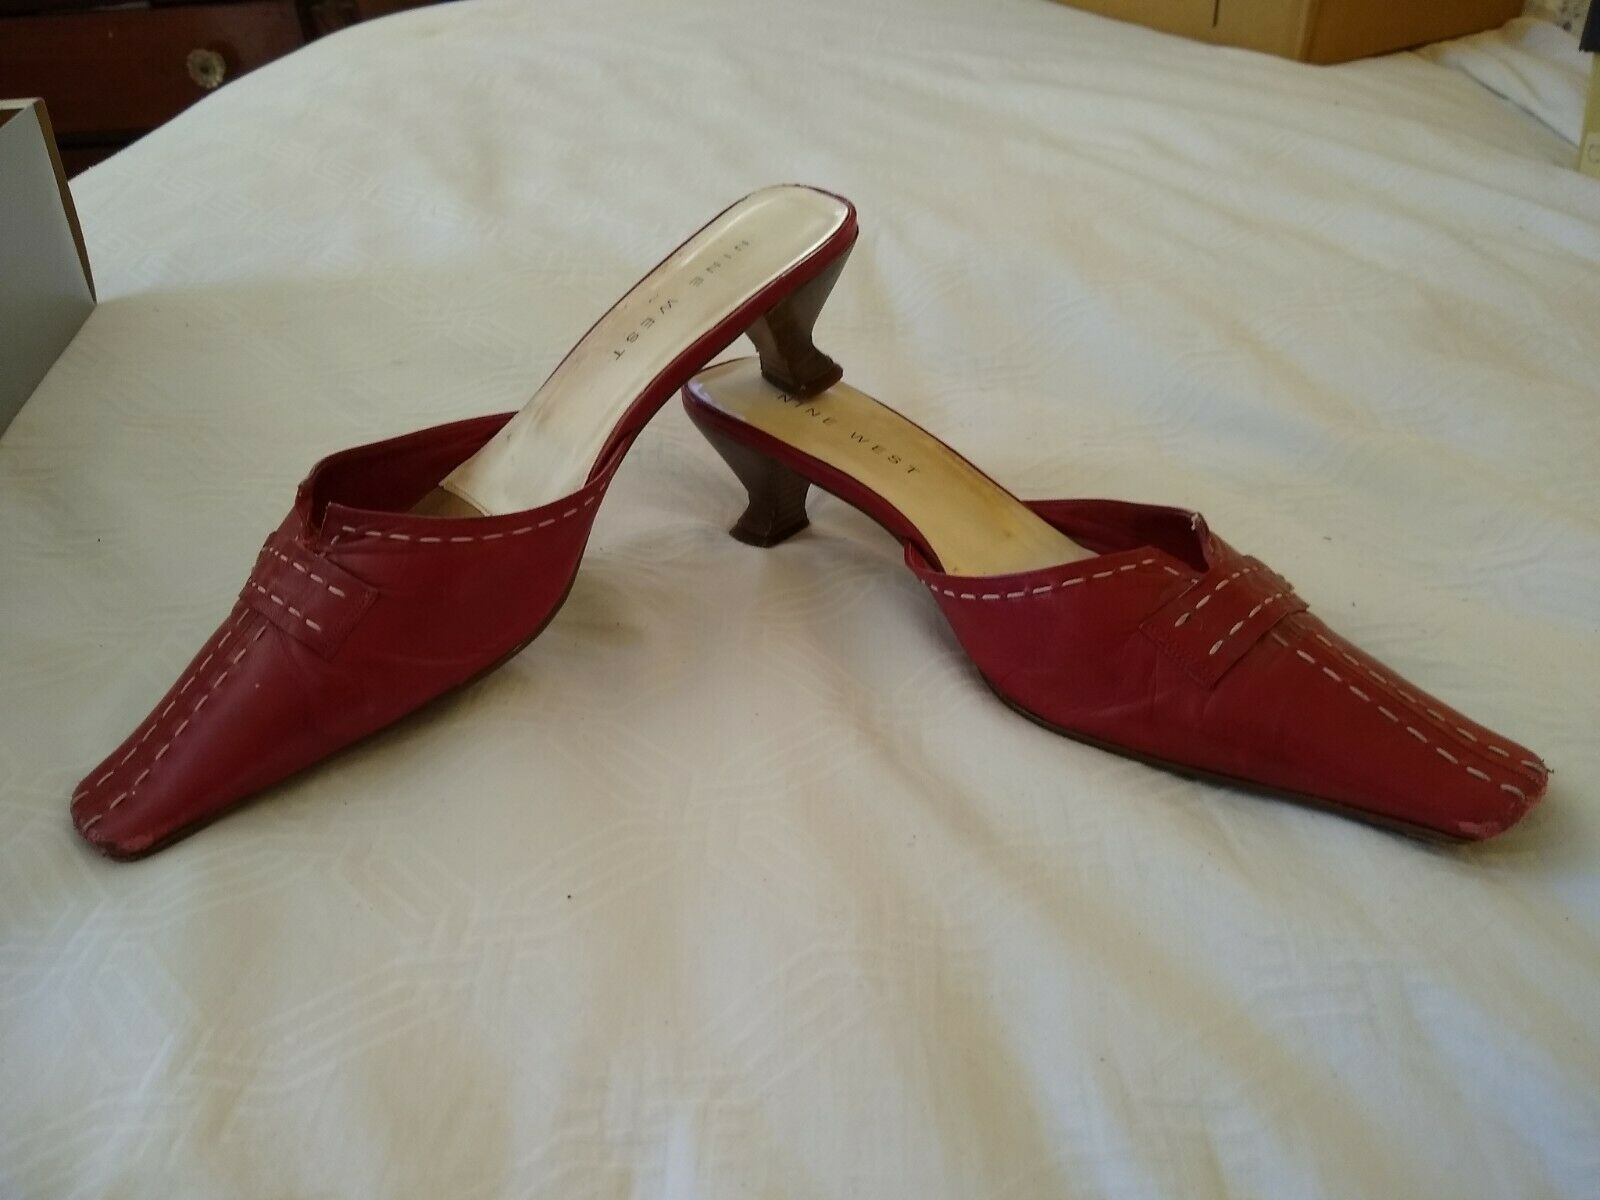 Vintage 90s Red Mules Shoes 9.5M Shaped Heel - image 3